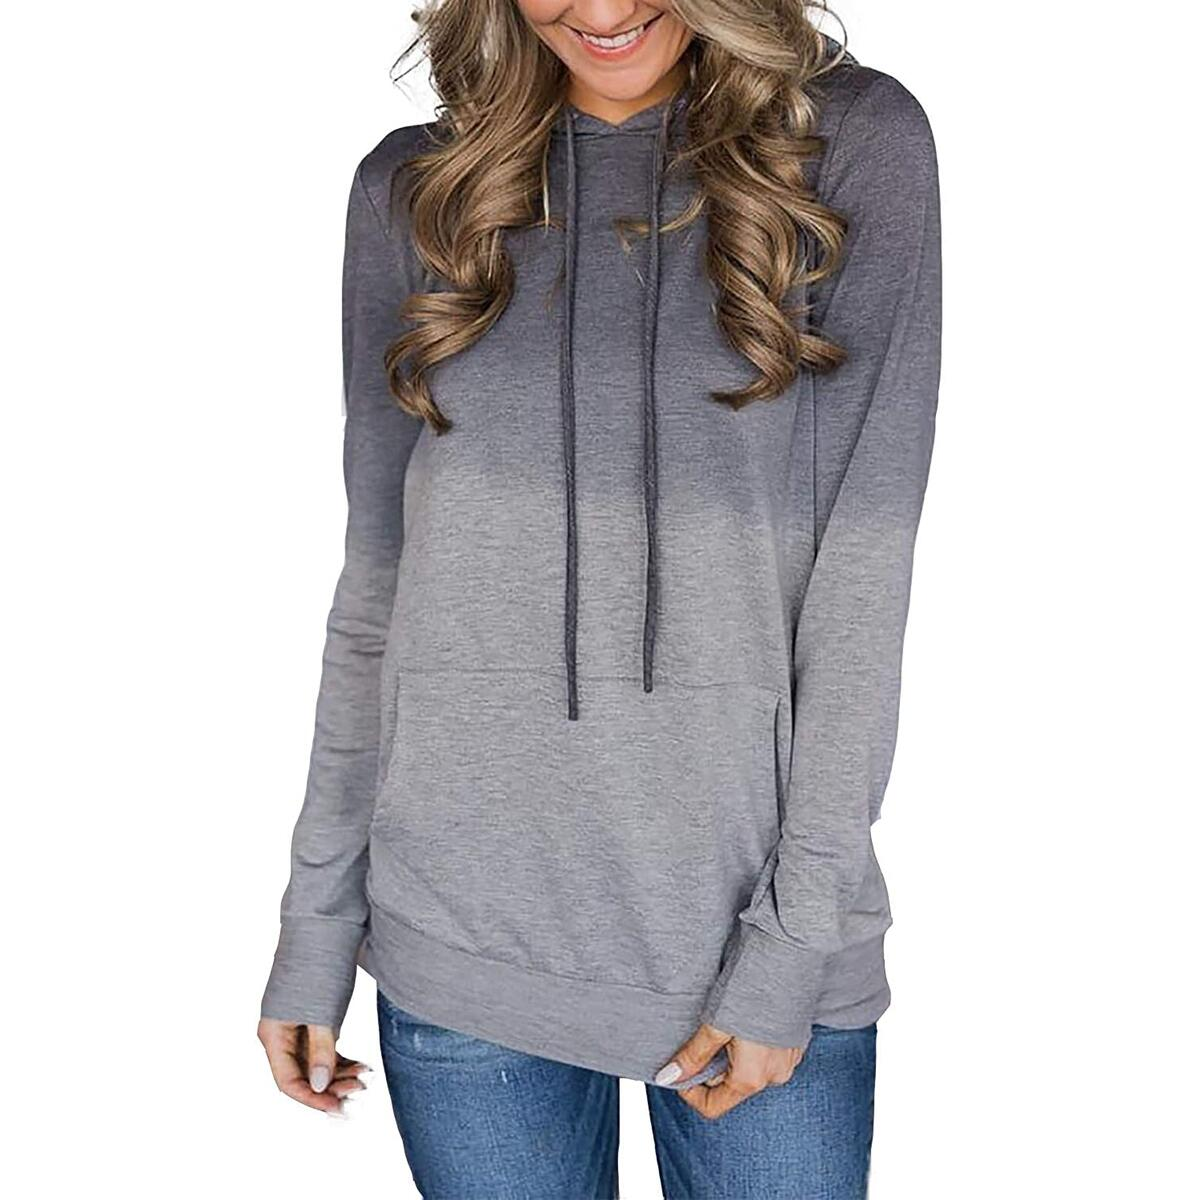 Minipeach Women's Pullover Long Sleeve Hoodies Coat Loose Casual Sweatshirts with Pocket C-ombre Gray